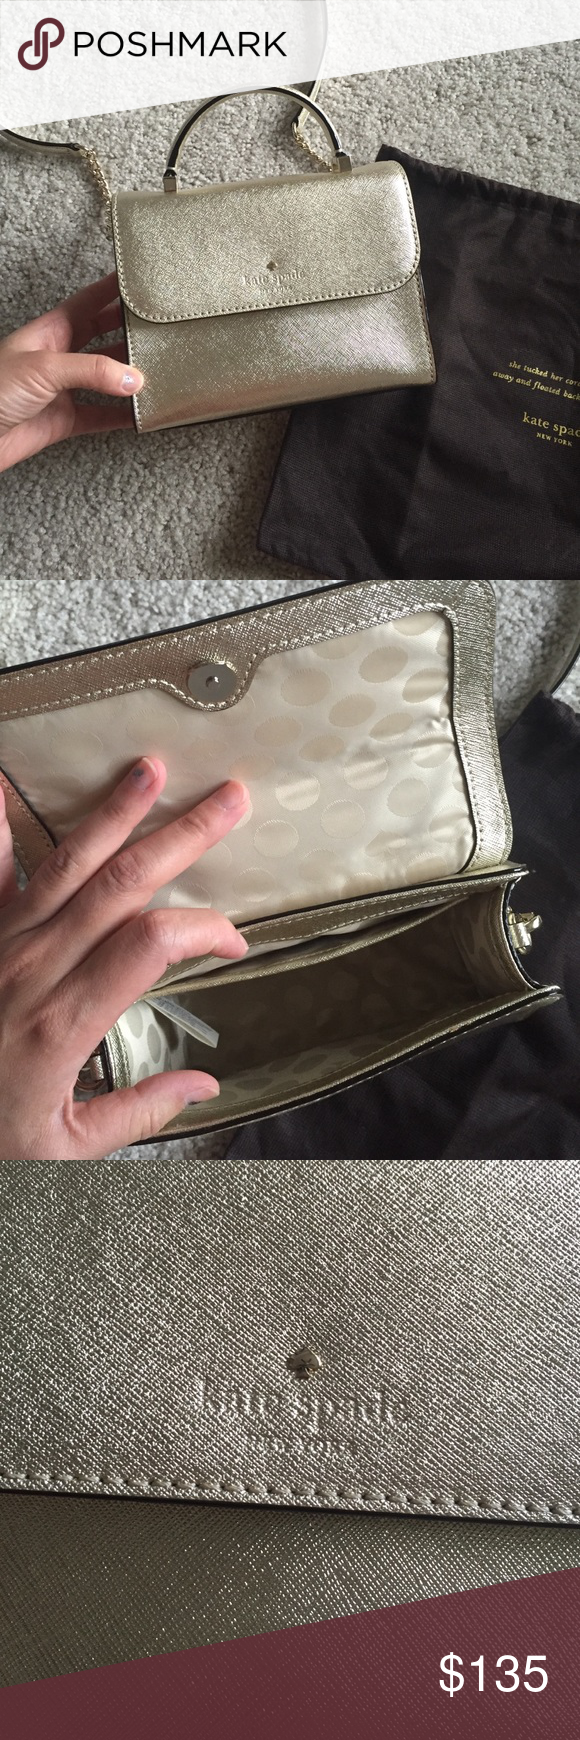 """Kate spade small purse Never used Nwot. Authentic Kate spade. Dust bag included. Removable shoulder strap. Has 1 interior pocket. Gold shimmery Saffiano leather. In perfect new condition. 7*6*3"""". Crossbody strap 22"""". No trade. kate spade Bags Crossbody Bags"""